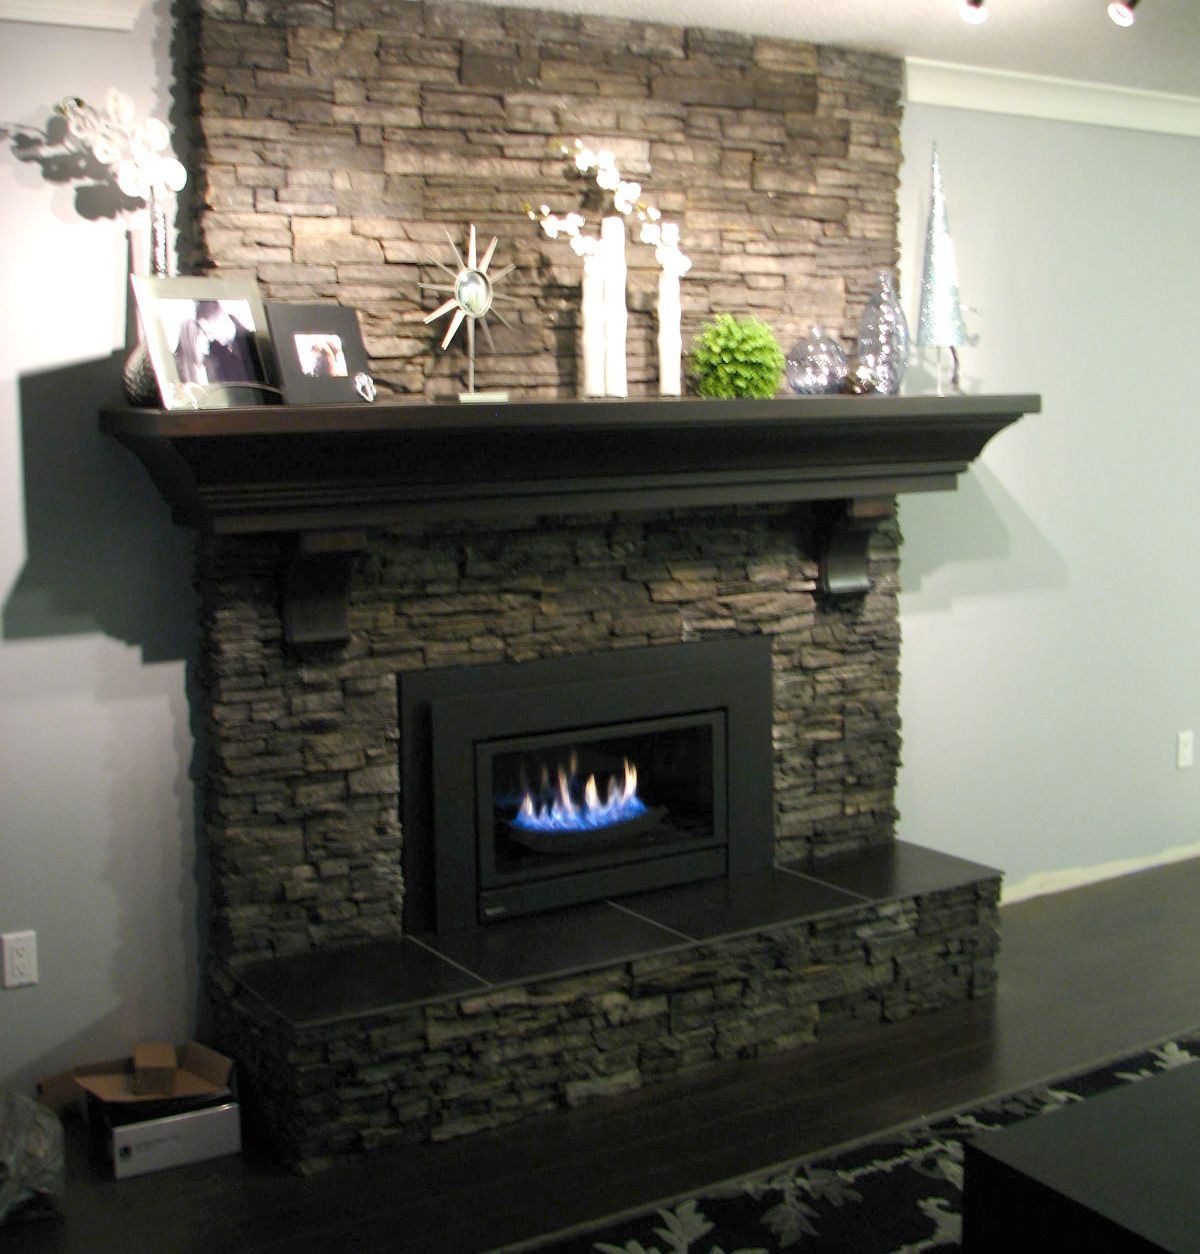 Fireplace idea gallery  mantel photos pictures decorating design also rh pinterest